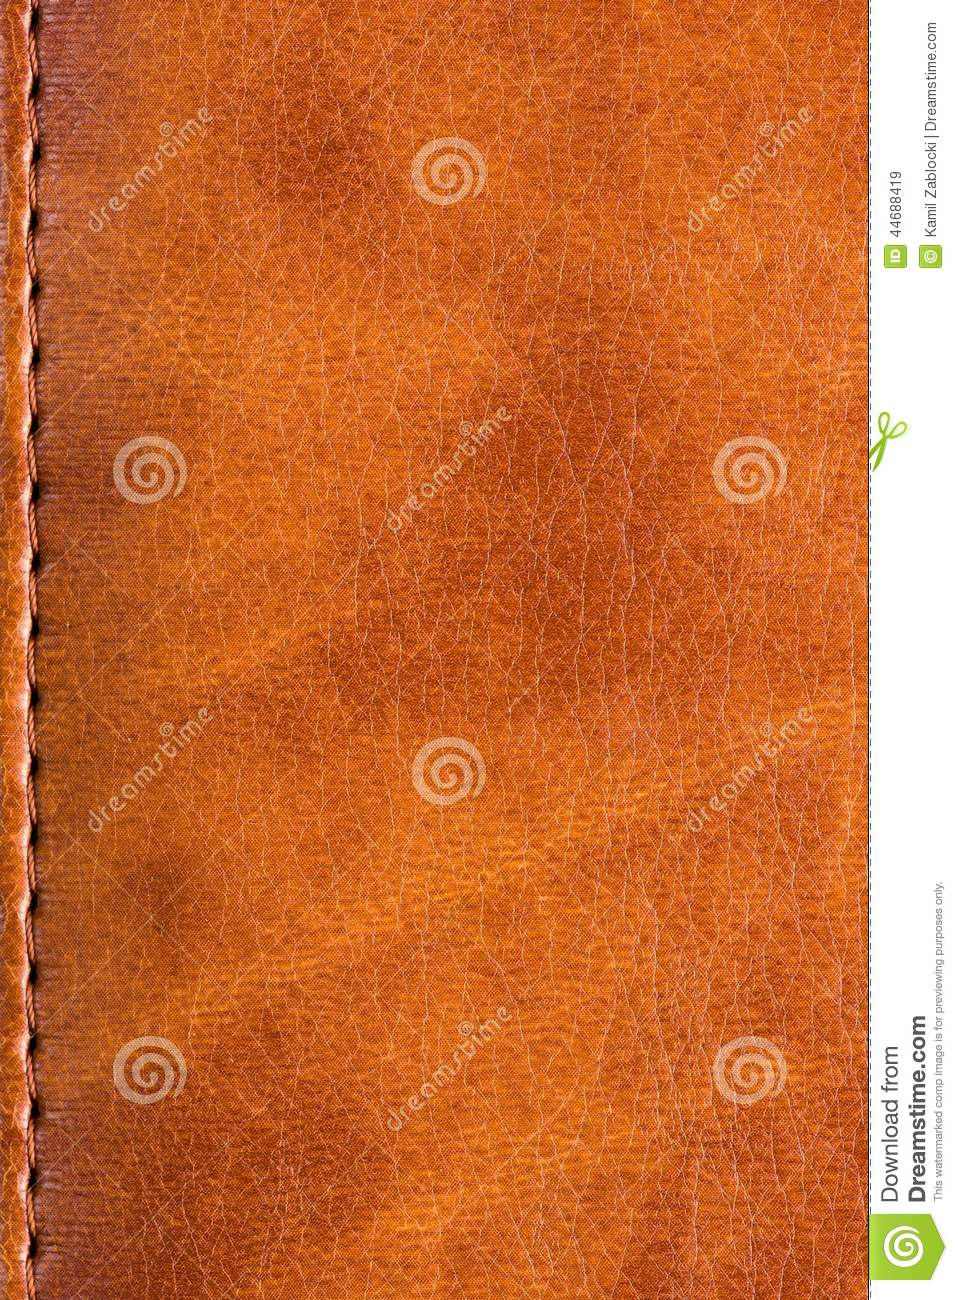 Book Cover Background Texture : Skin book cover texture stock photo image